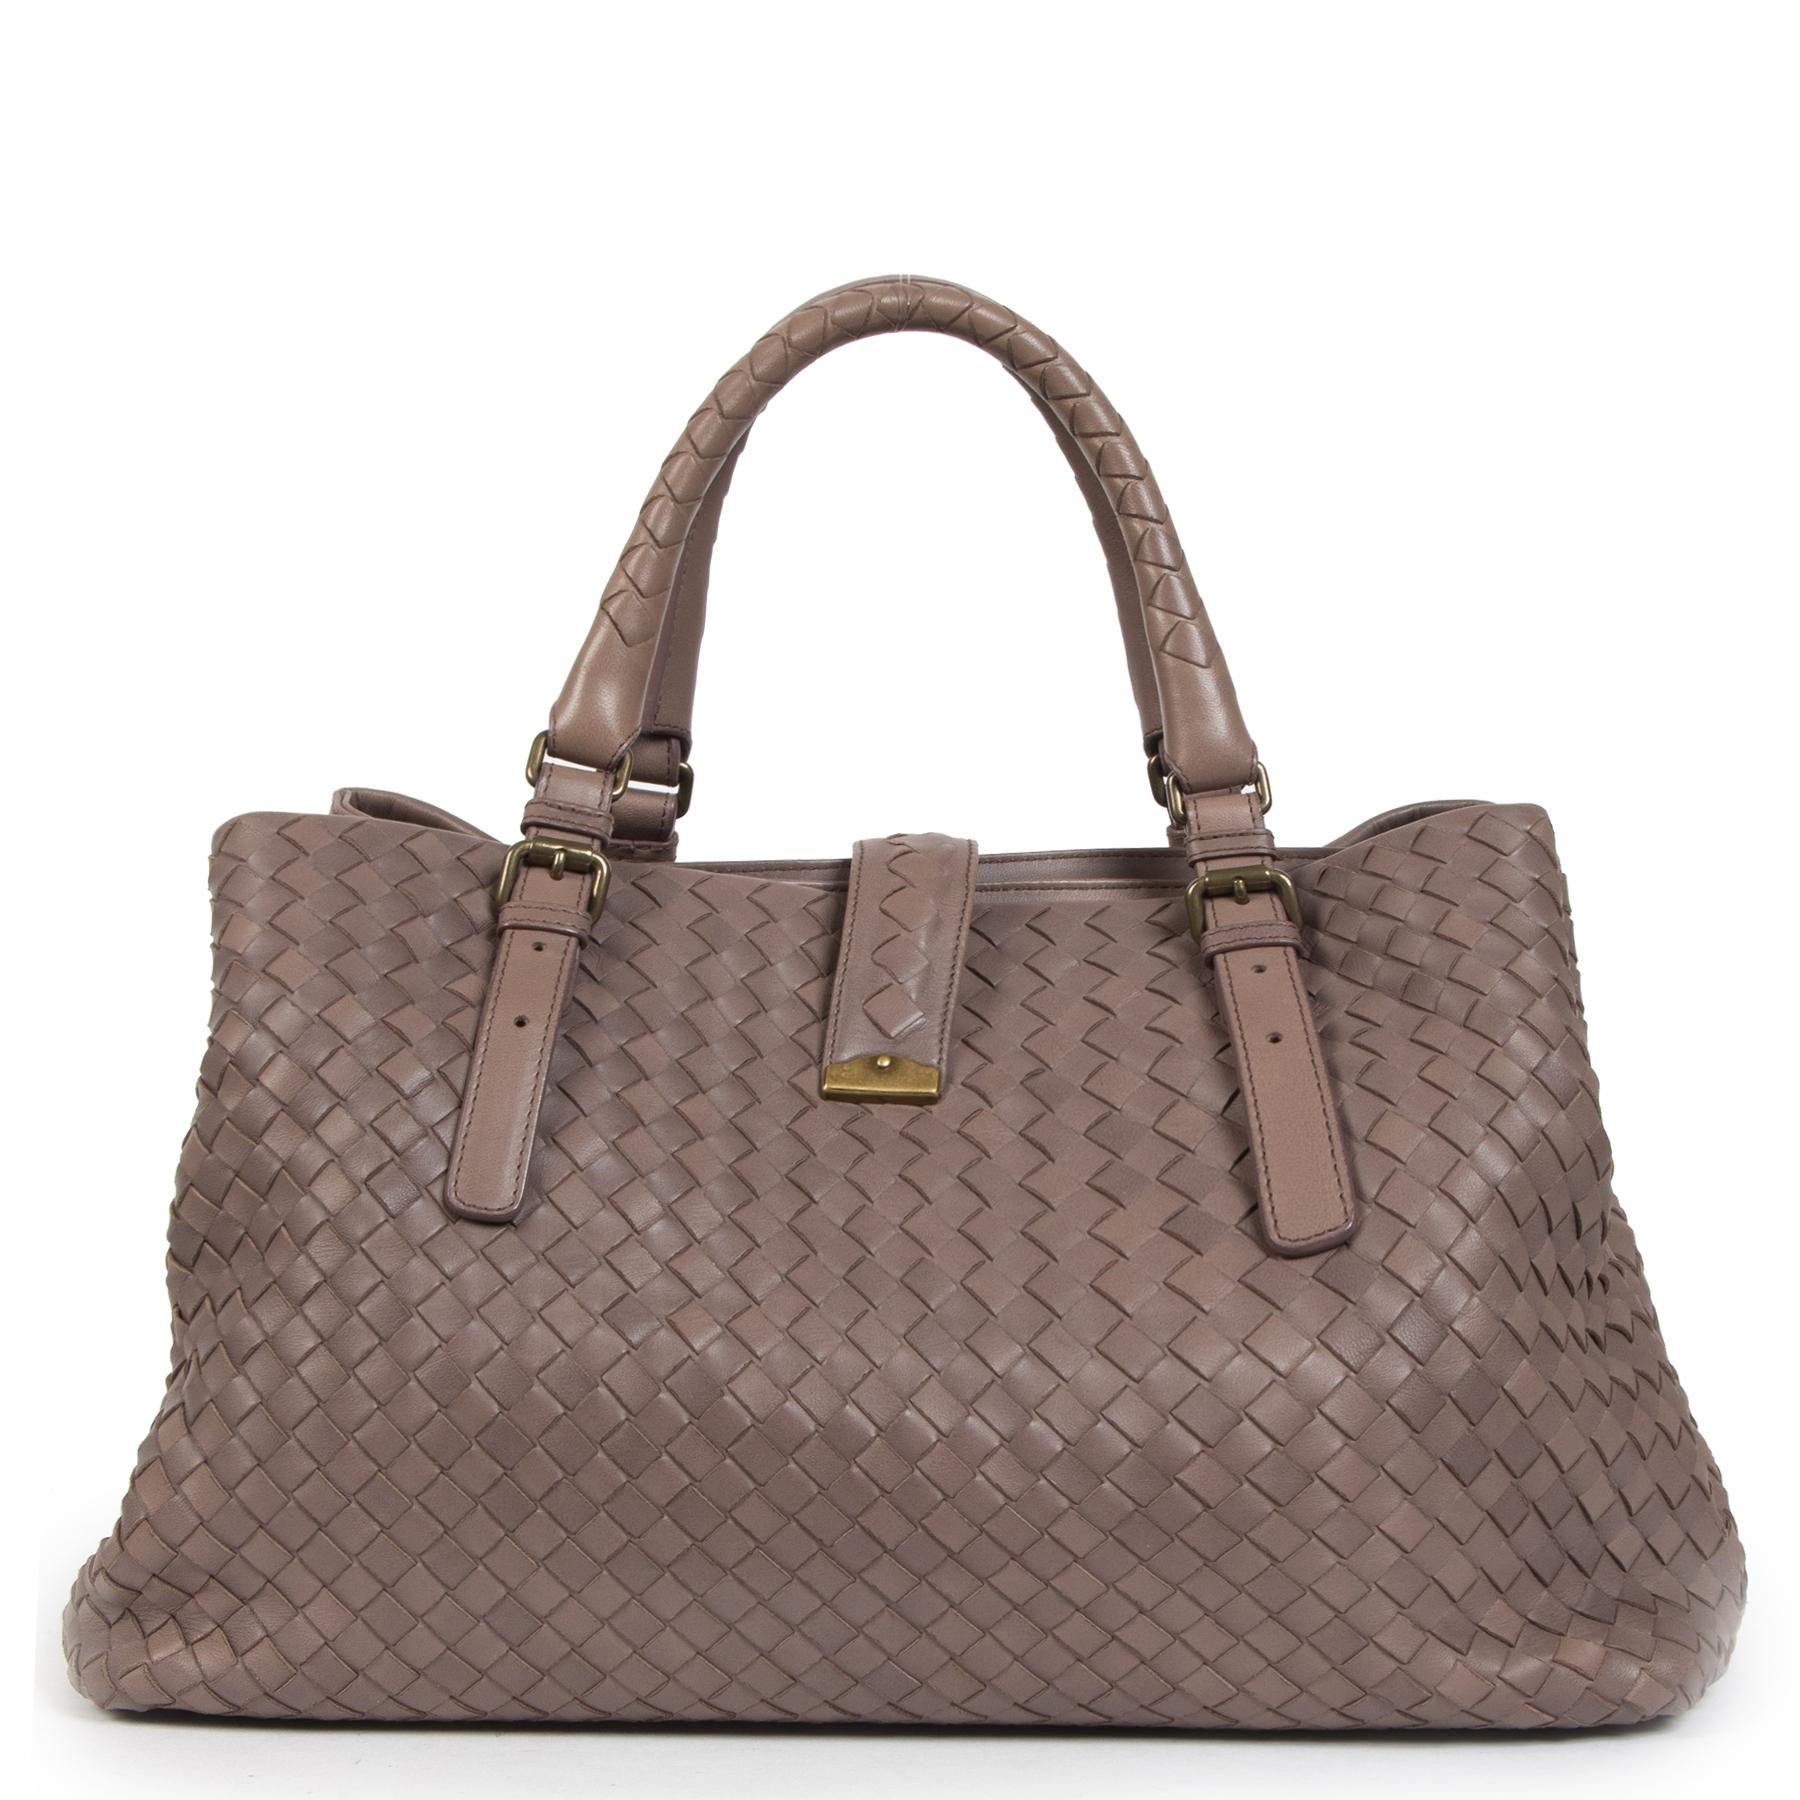 Are you looking for a Bottega Veneta Brown Intrecciato Roma Bag?